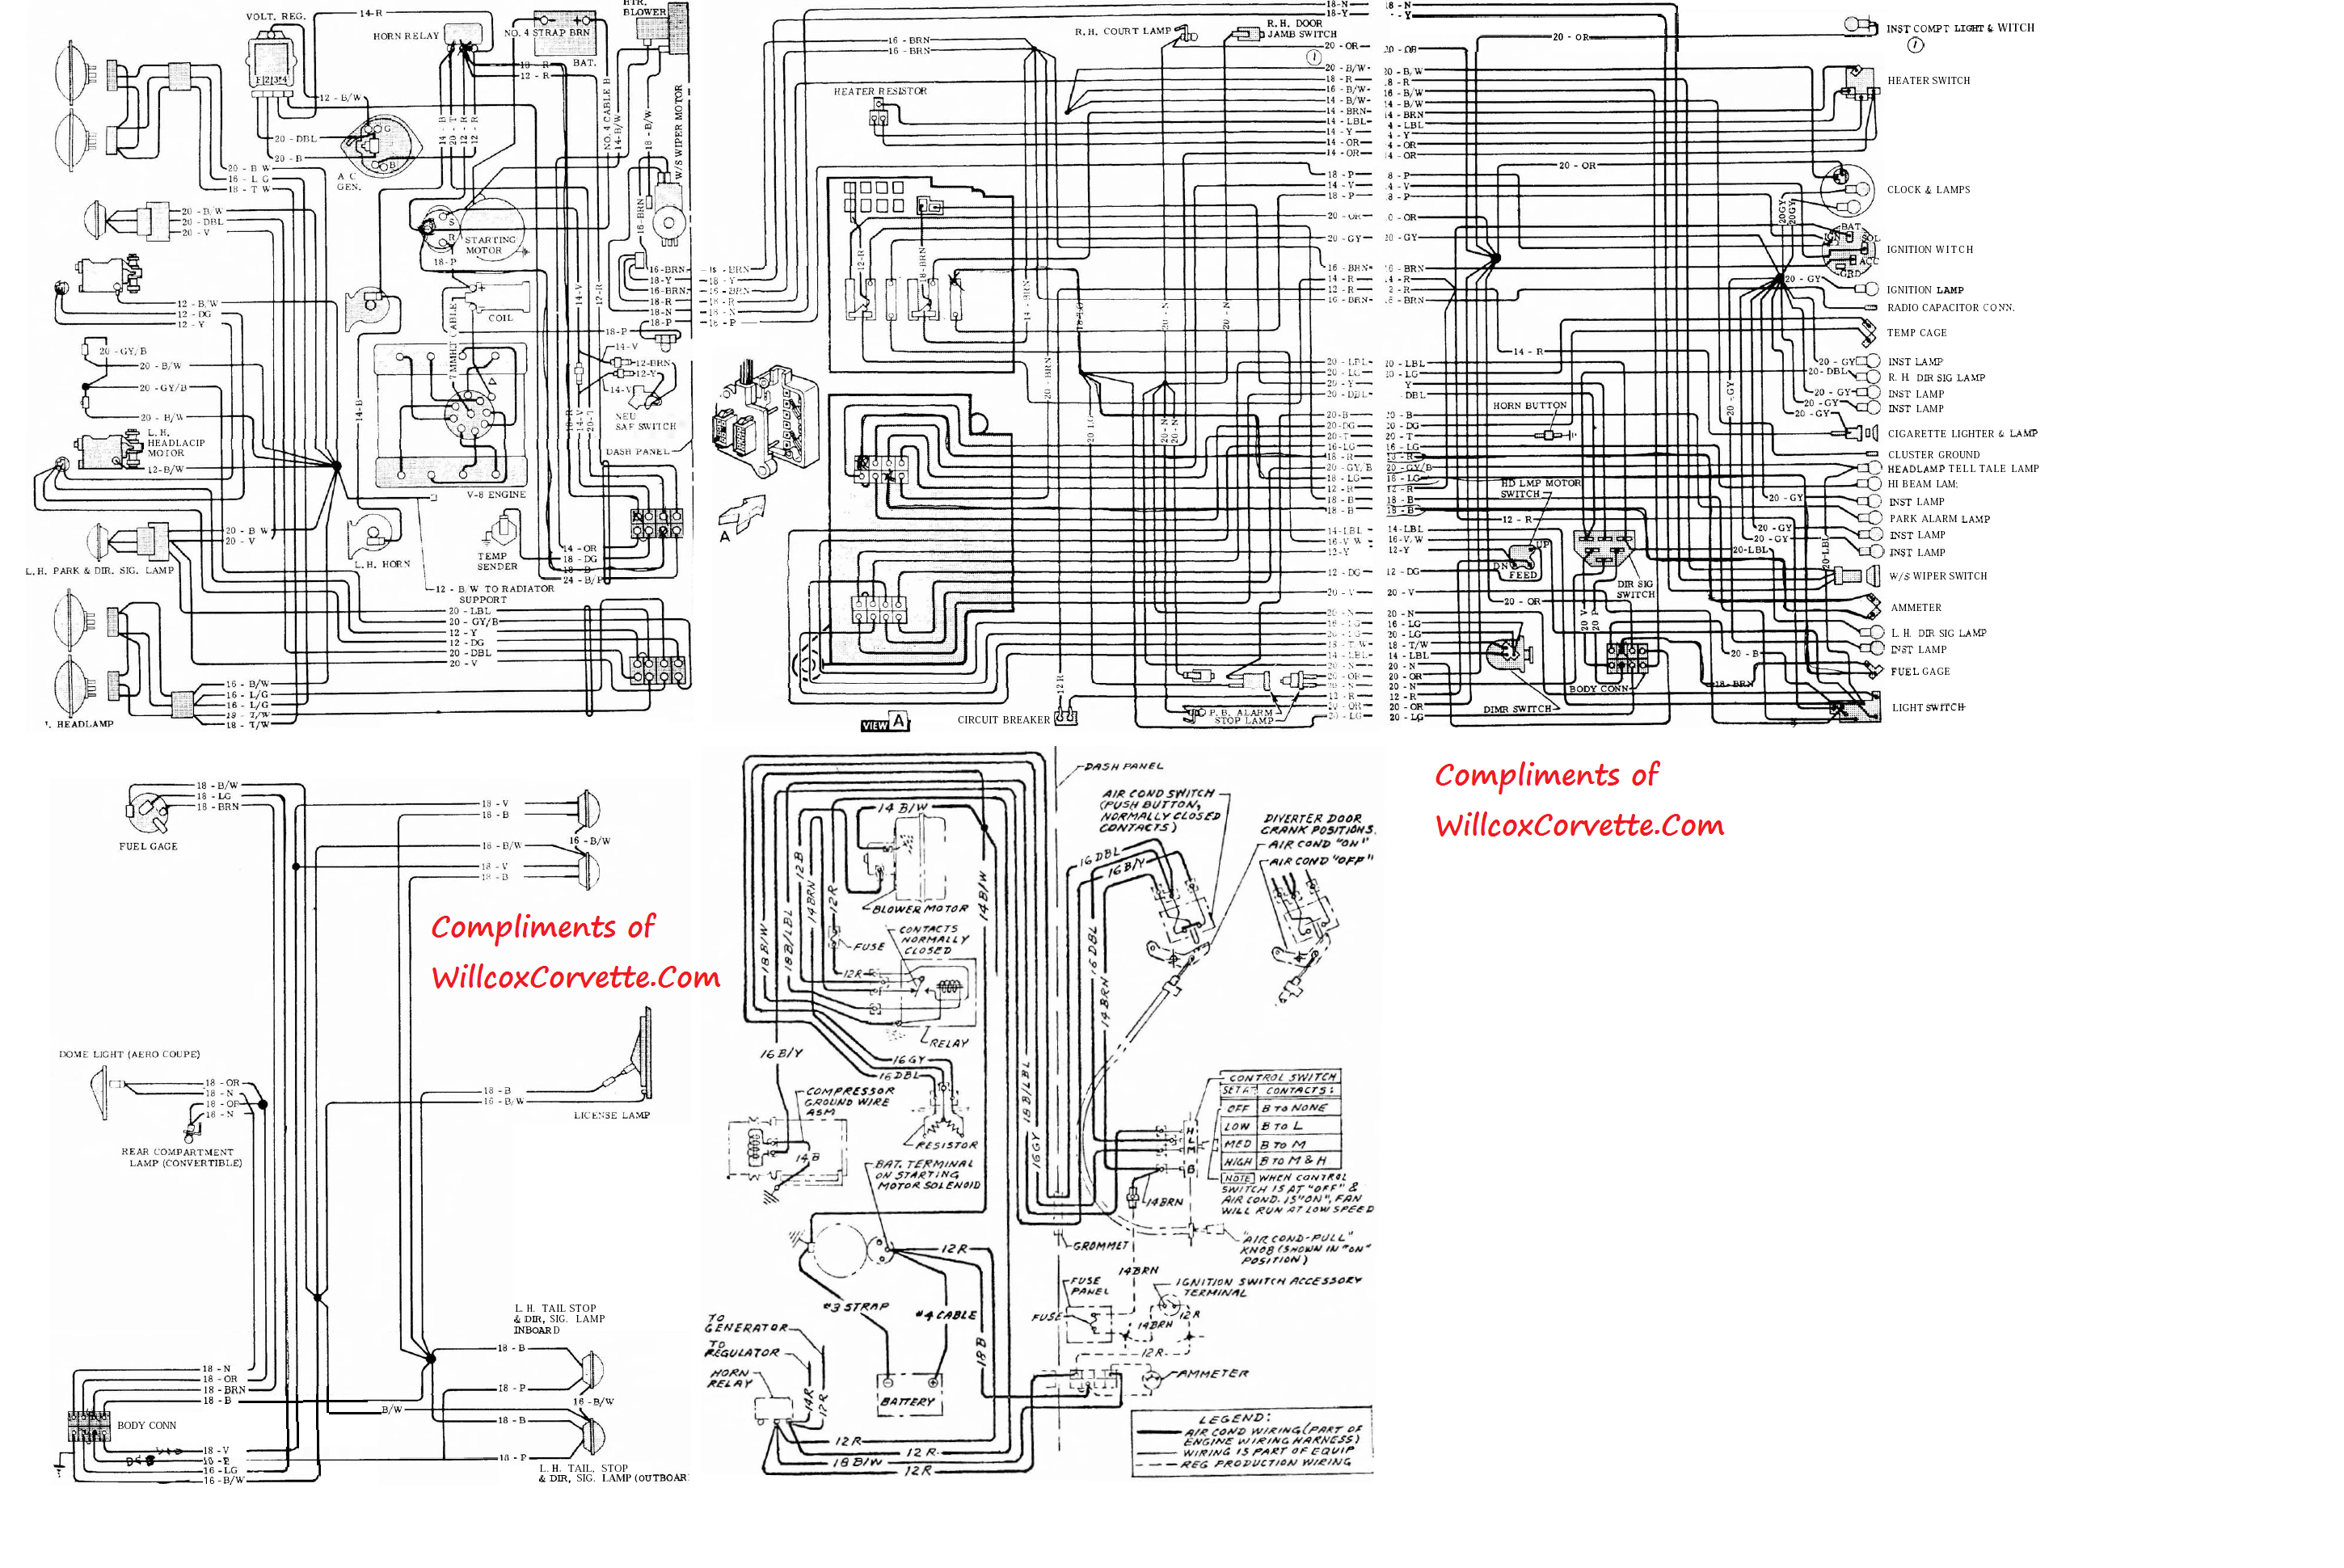 1980 porsche 911 sc wiring diagram trusted wiring diagram 1980 porsche 928 wiring diagram 1980 porsche [ 2900 x 1940 Pixel ]